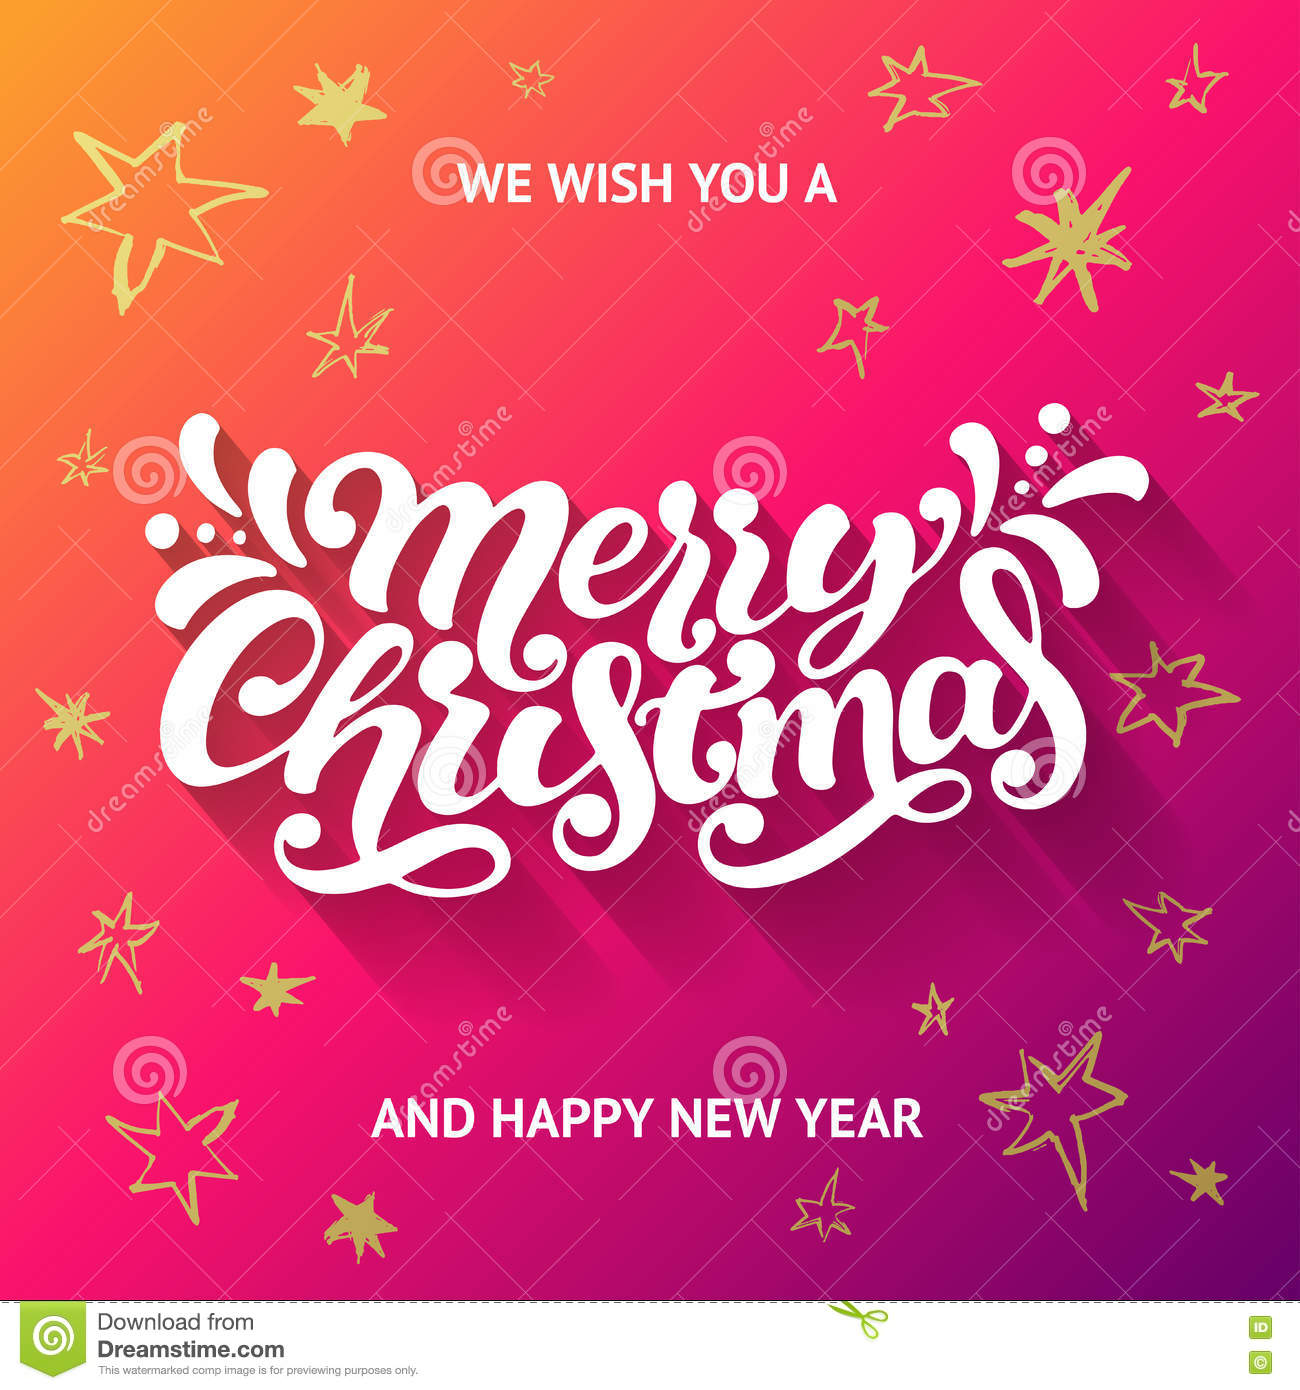 We Wish You A Merry Christmas And Happy New Year Greeting Card Stock